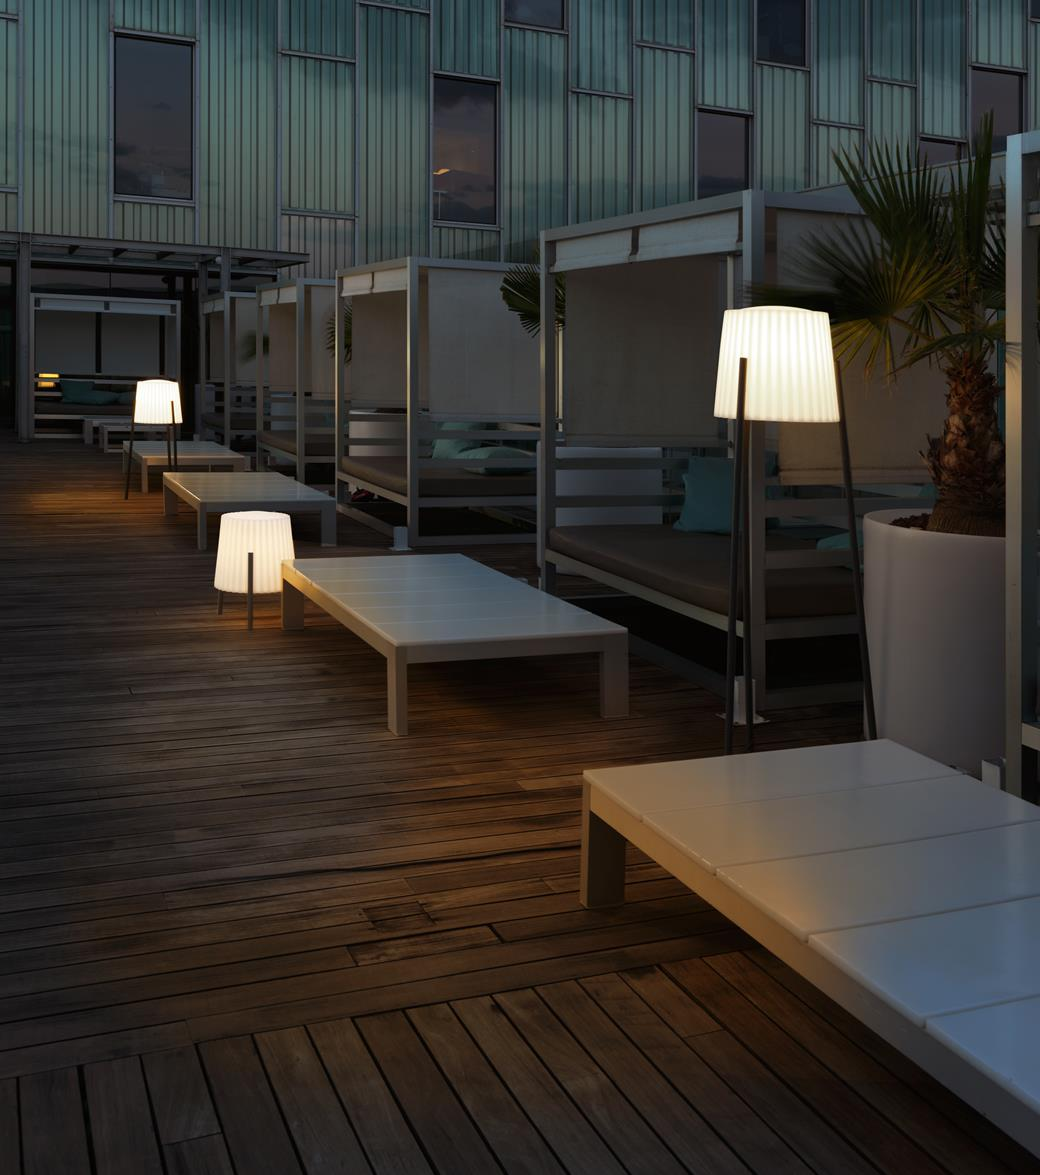 Advanced Led Lighting For Interior Spaces In Perth Sii Light